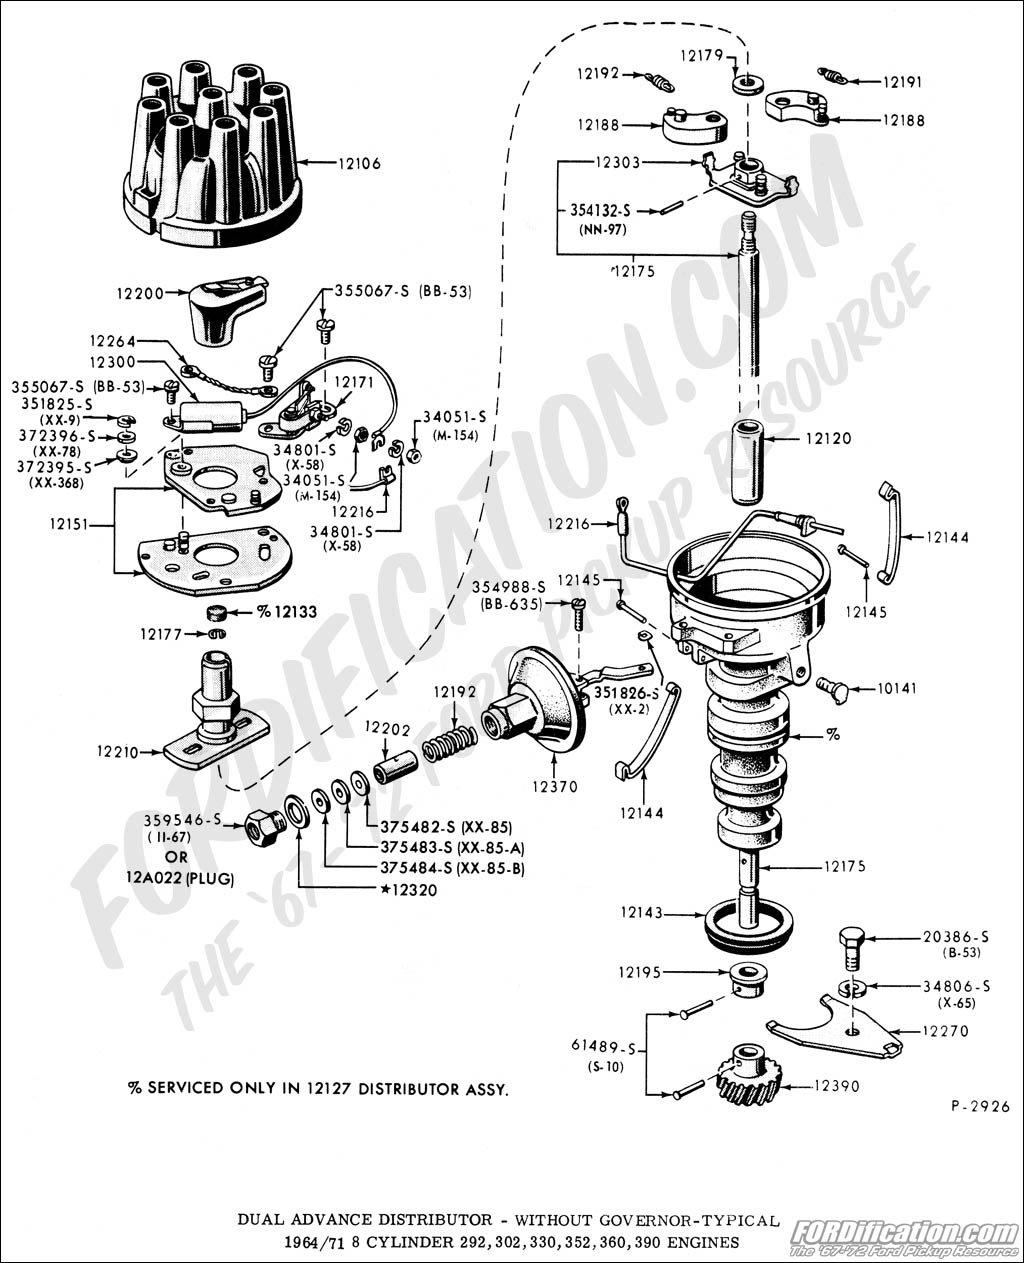 Ford 302 Cylinder Head Parts Diagram Not Lossing Wiring Spark Plug For 1990 Distributor Diagrams Simple Rh 16 Studio011 De Torque Sequence With Plugs